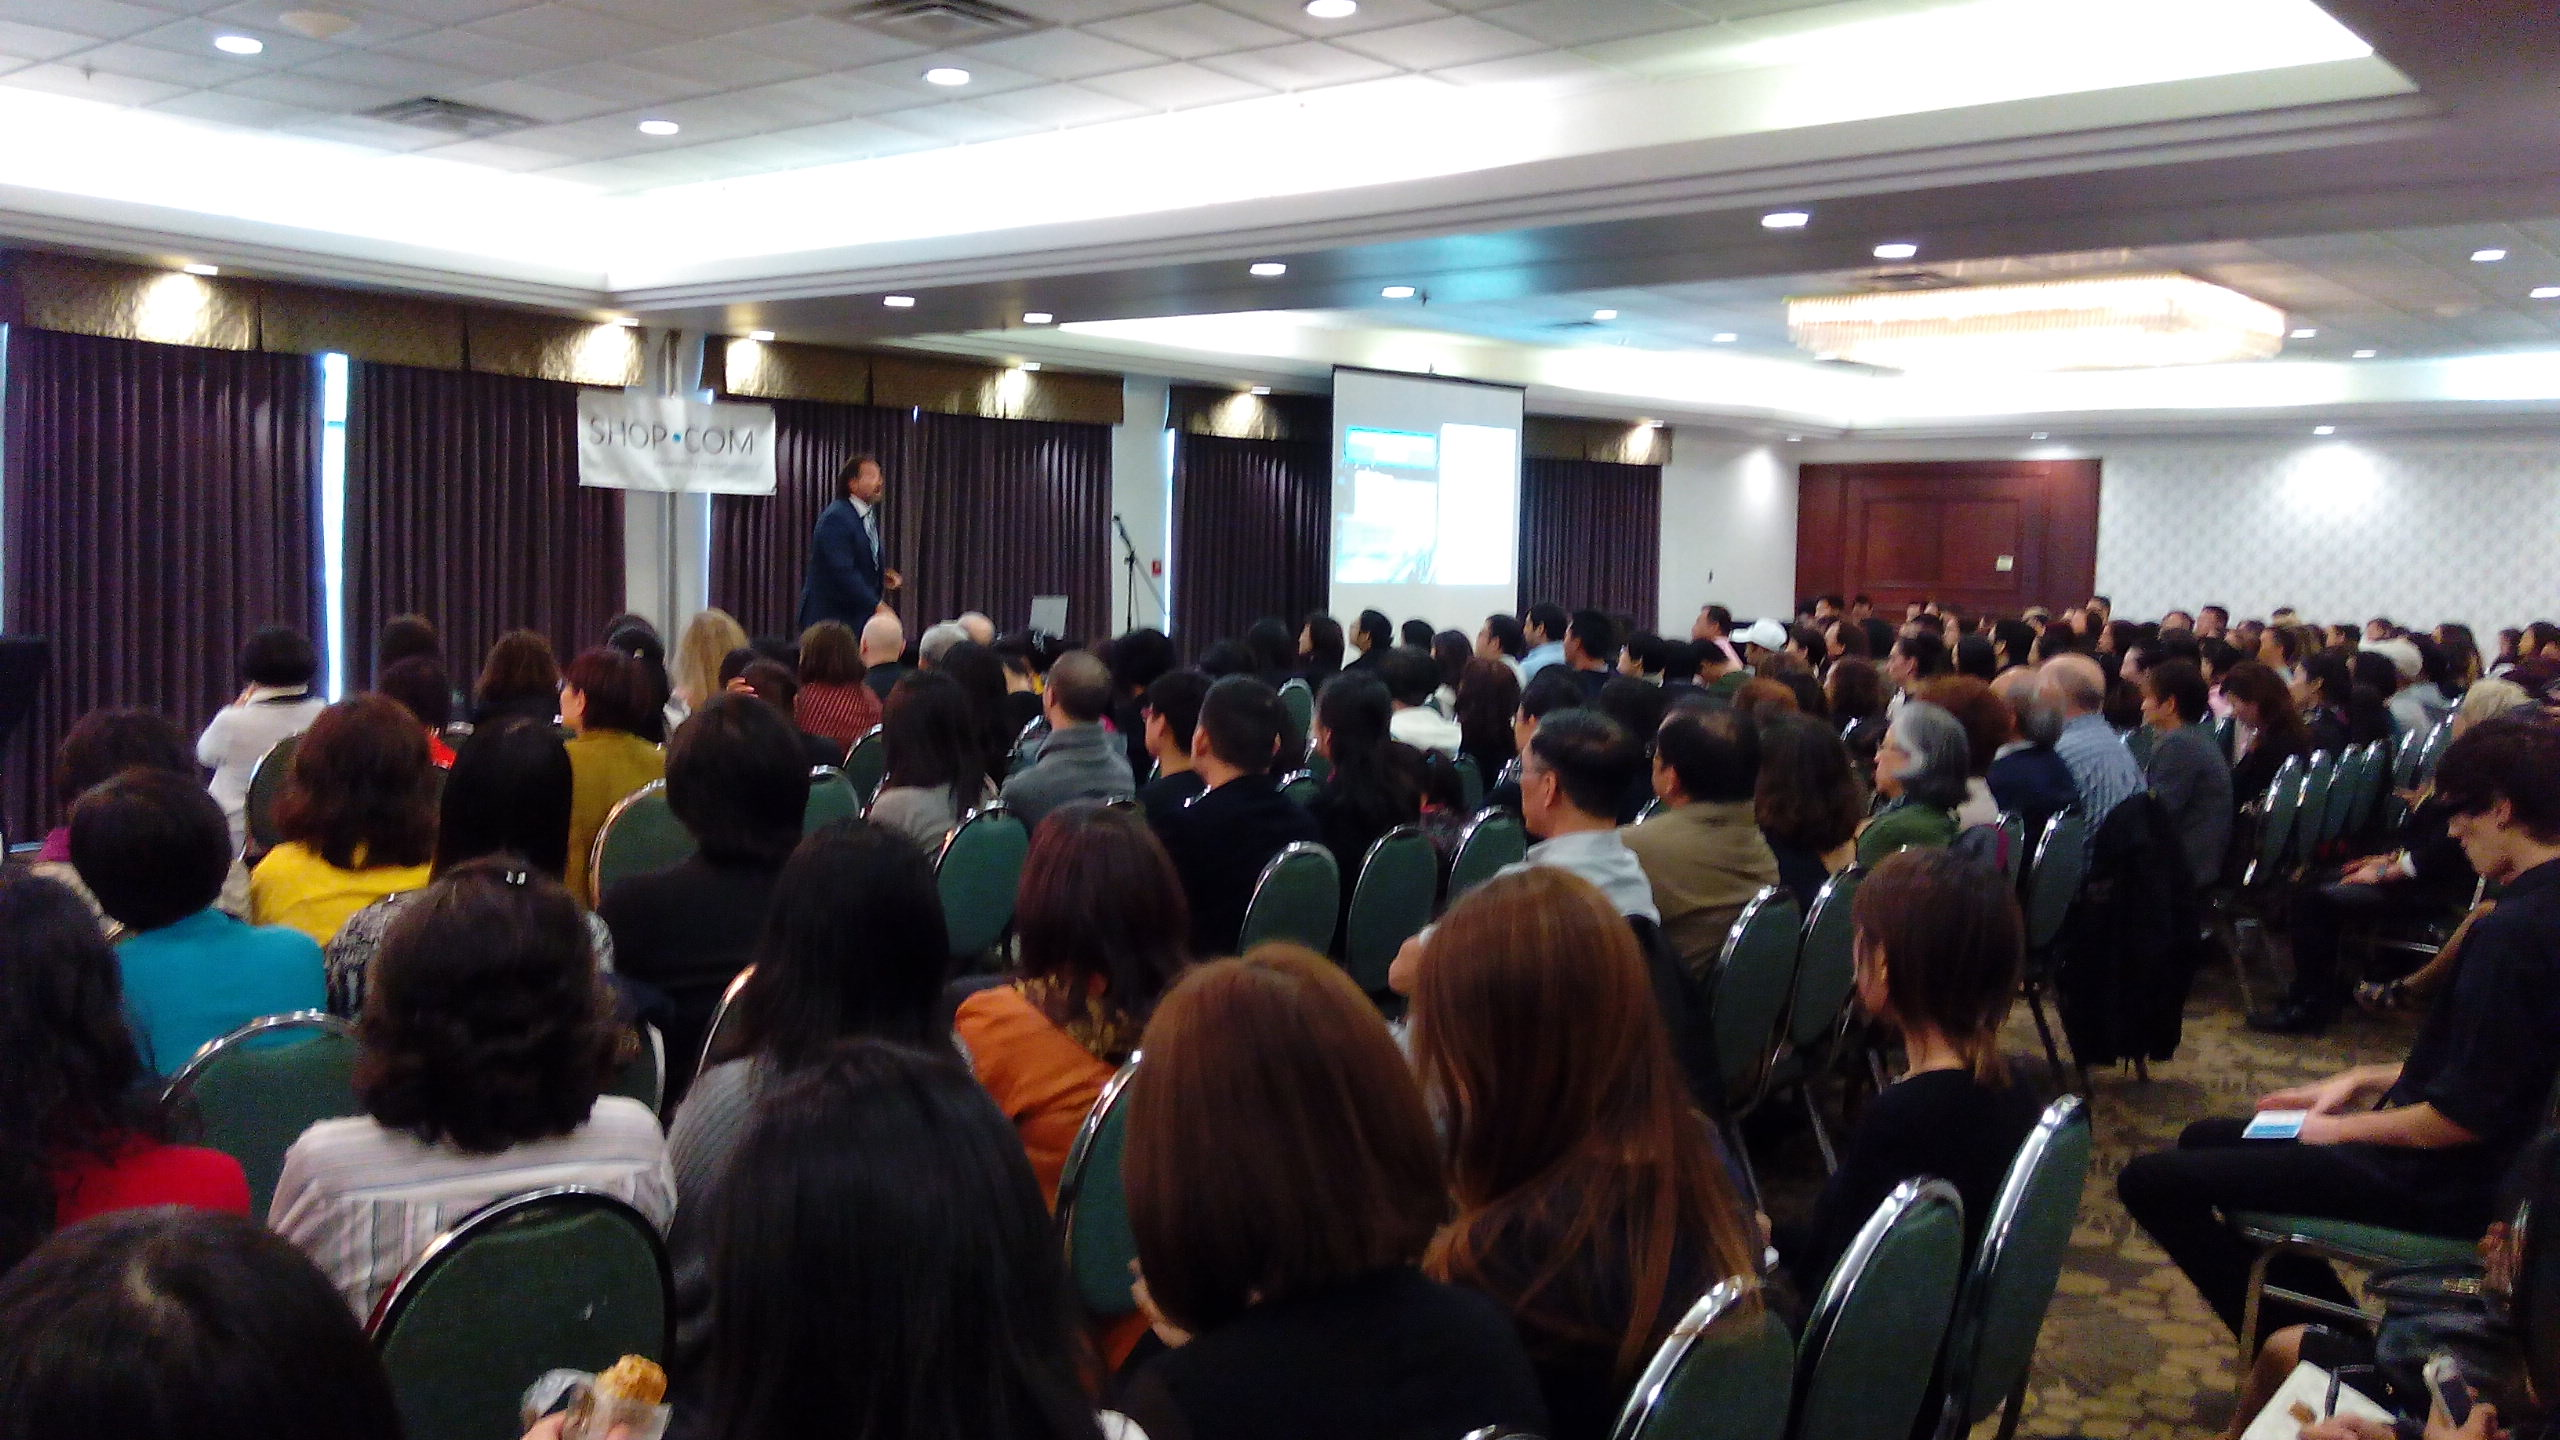 Dennis Franks captivated the audience at Vancouver UBP